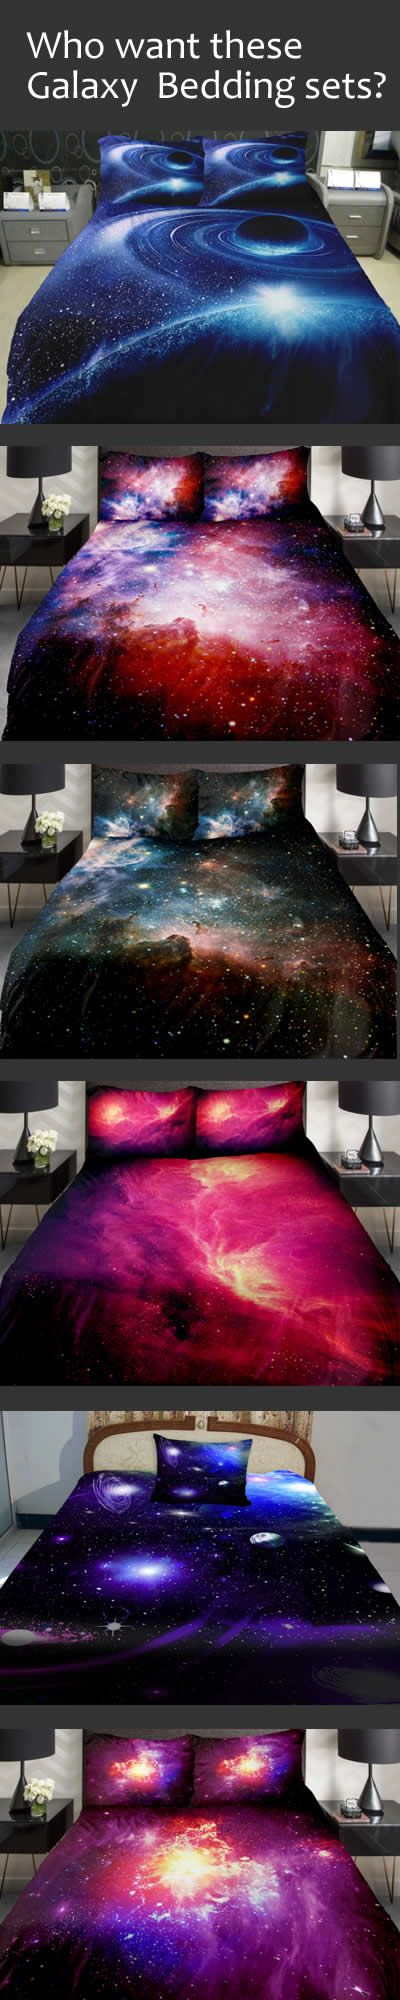 Best 25 galaxies ideas on pinterest for Galaxy bedroom ideas